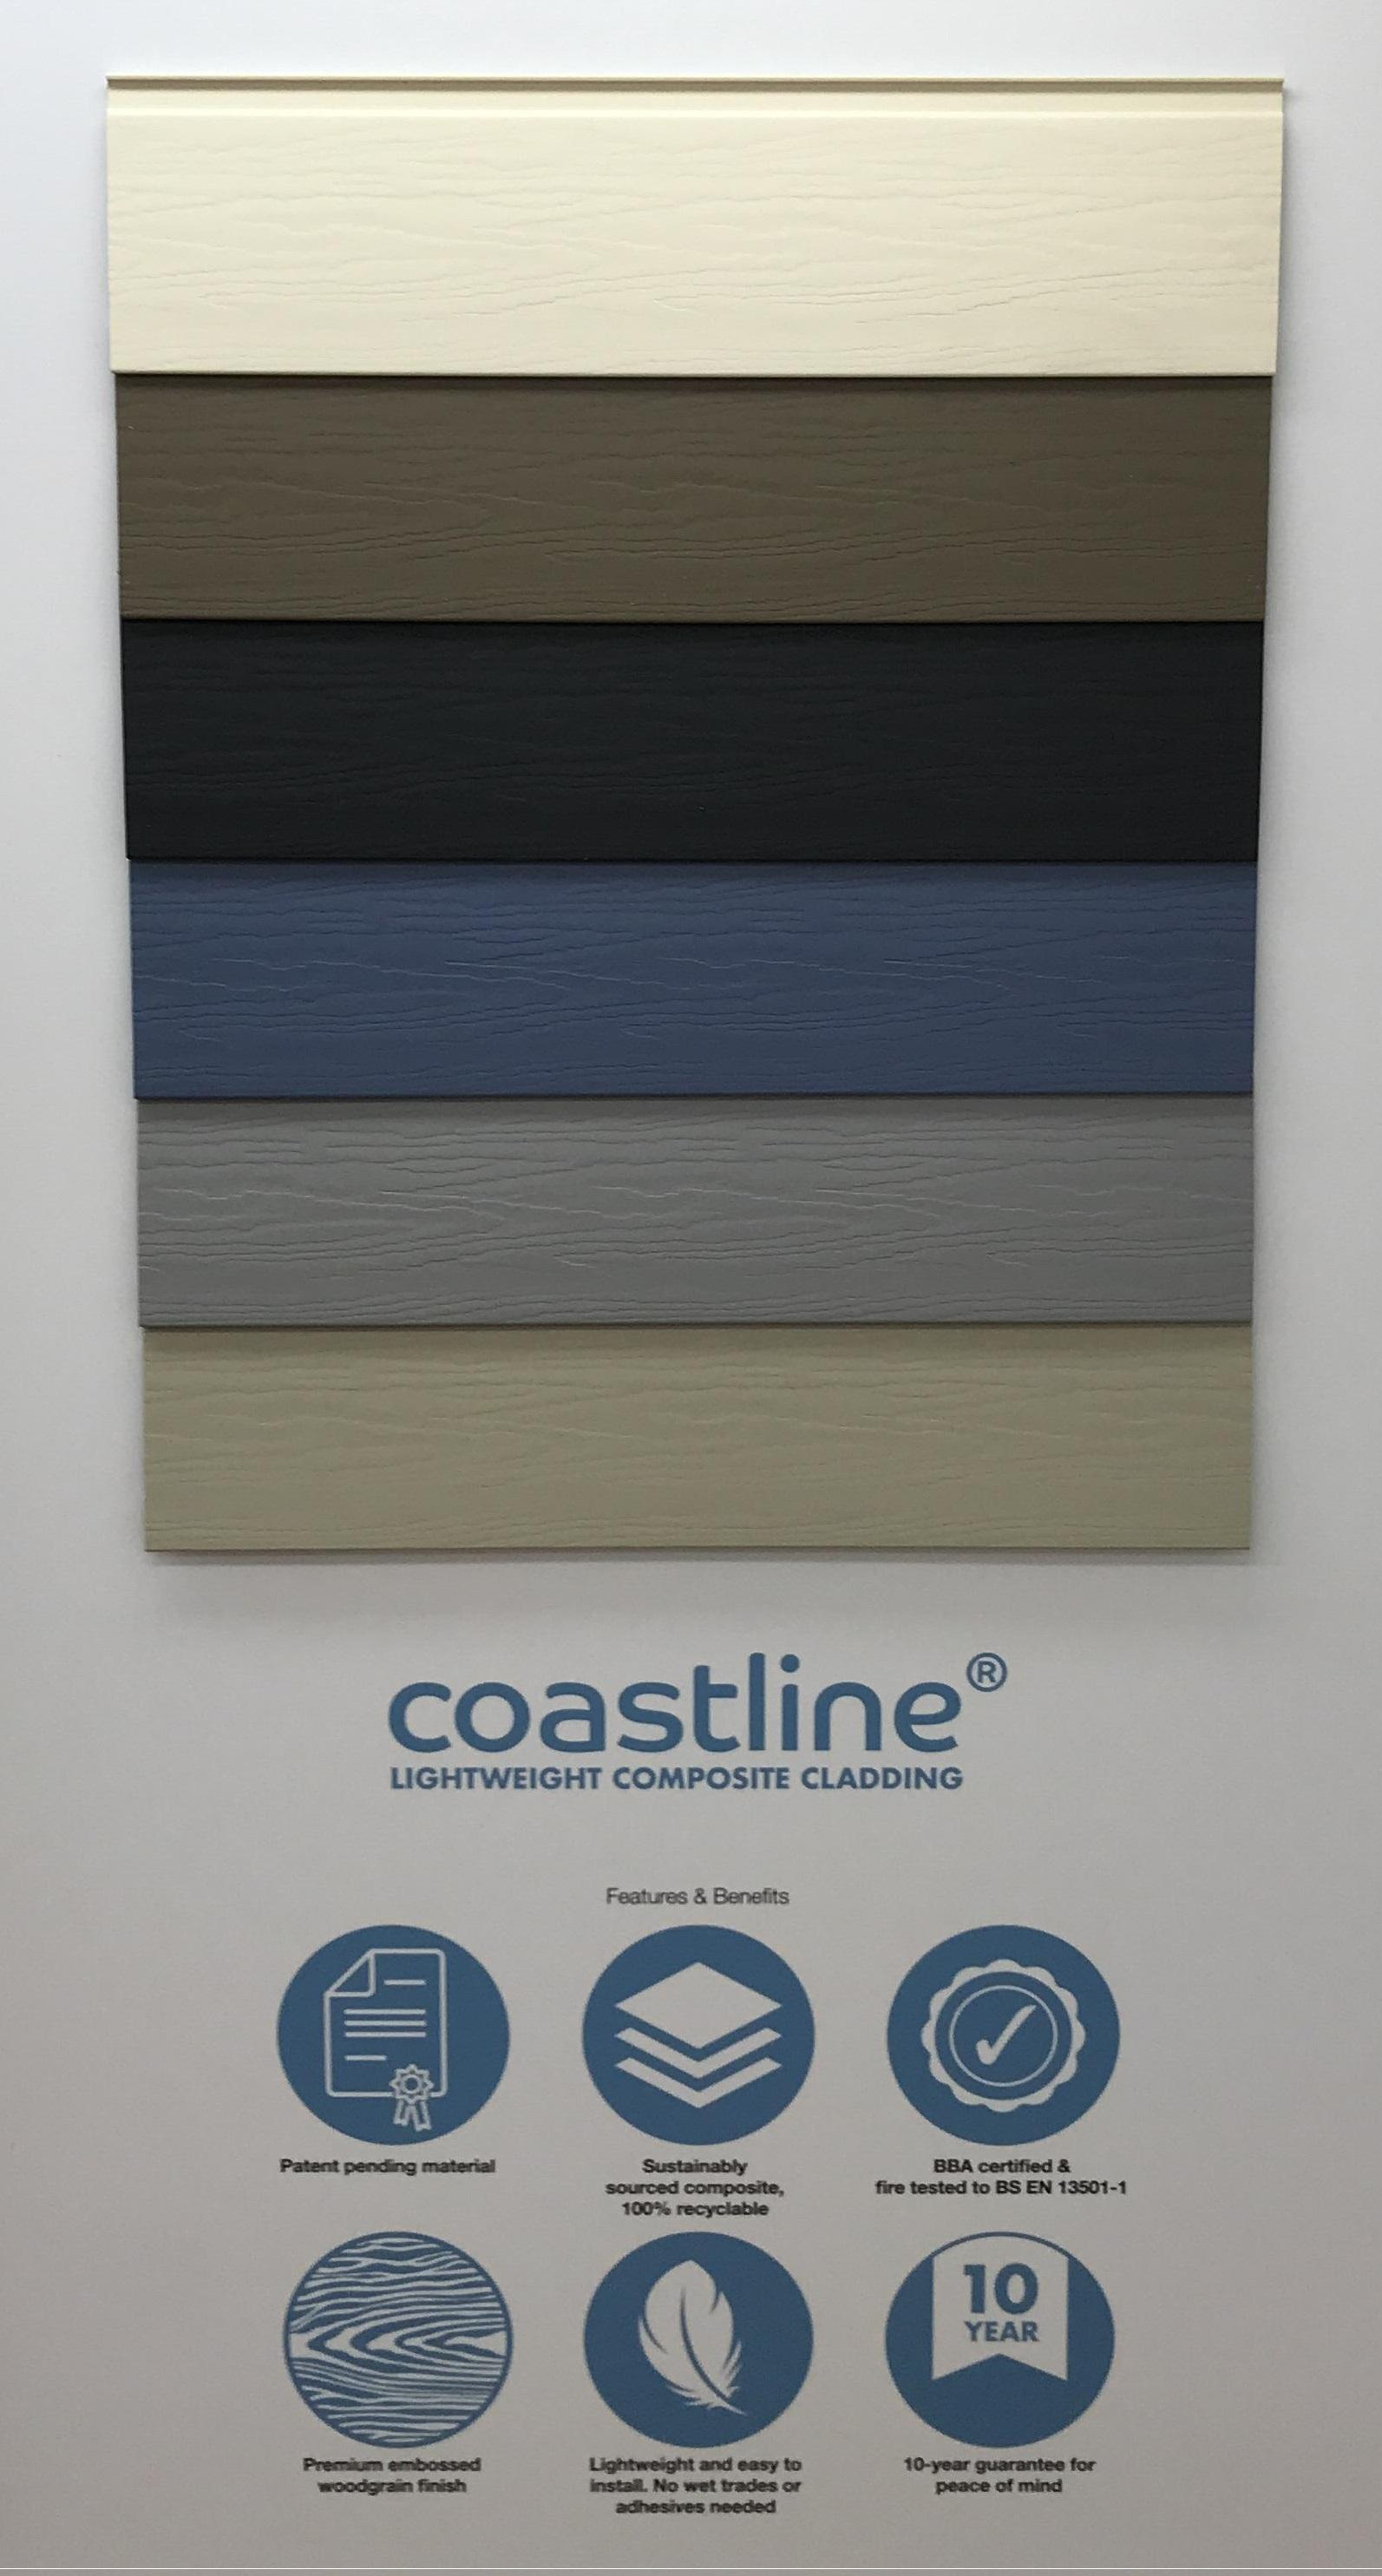 - What's more it doesn't just protect and preserve the fabric of the building. It does it in true style, with a range of six attractive New England colours: Anthracite Grey, Moondust Grey, Pigeon Blue, Oyster White, Soft Green and Taupe. A contemporary matt embossed woodgrain finish adds to the authentic timber facade effect. Unlike timber, Coastline is virtually maintenance-free, will not rot or warp and is pest and insect resistant. It's specially developed colour-coordinated and full powder-coated aluminium trims and end closers means installation is both quick and easy, with no wet trades or adhesives needed. Suitable for buildings up to 18m tall, it is BBA certified and fire tested in the UK by Exova Warringtonfire to conform to BS EN 13501 (Fire Classification for Construction Products).Quick and simple to install, Coastline employs a simple interlocking mechanism that fixes to standard timber battens with no membranes required while coordinating aluminium trims and end closers, combined with silicone sealants in complementary colours, create the perfect finish in every installation.As the next generation of cladding, Coastline is both maintenance-free and less harmful to the environment than alternative cladding systems as it contains no organic material so it will never absorb moisture, never rot and never attract insects that could damage its fabric. Unlike cement boards, Coastline is lightweight, fade-resistant, 100% recyclable and will not release harmful silica dust when cut to length. Paint and preservative treatments contain volatile chemicals that are potentially harmful to the environment but Coastline will never need them – all it takes to bring it back to its brilliant best is the occasional clean with a garden hose.Also, with ongoing issues around the supply of traditional materials such as bricks, building designers and contractors are increasingly seeking alternatives that are widely available in the UK and not reliant on imports. Coastline fits the bill perfectly.